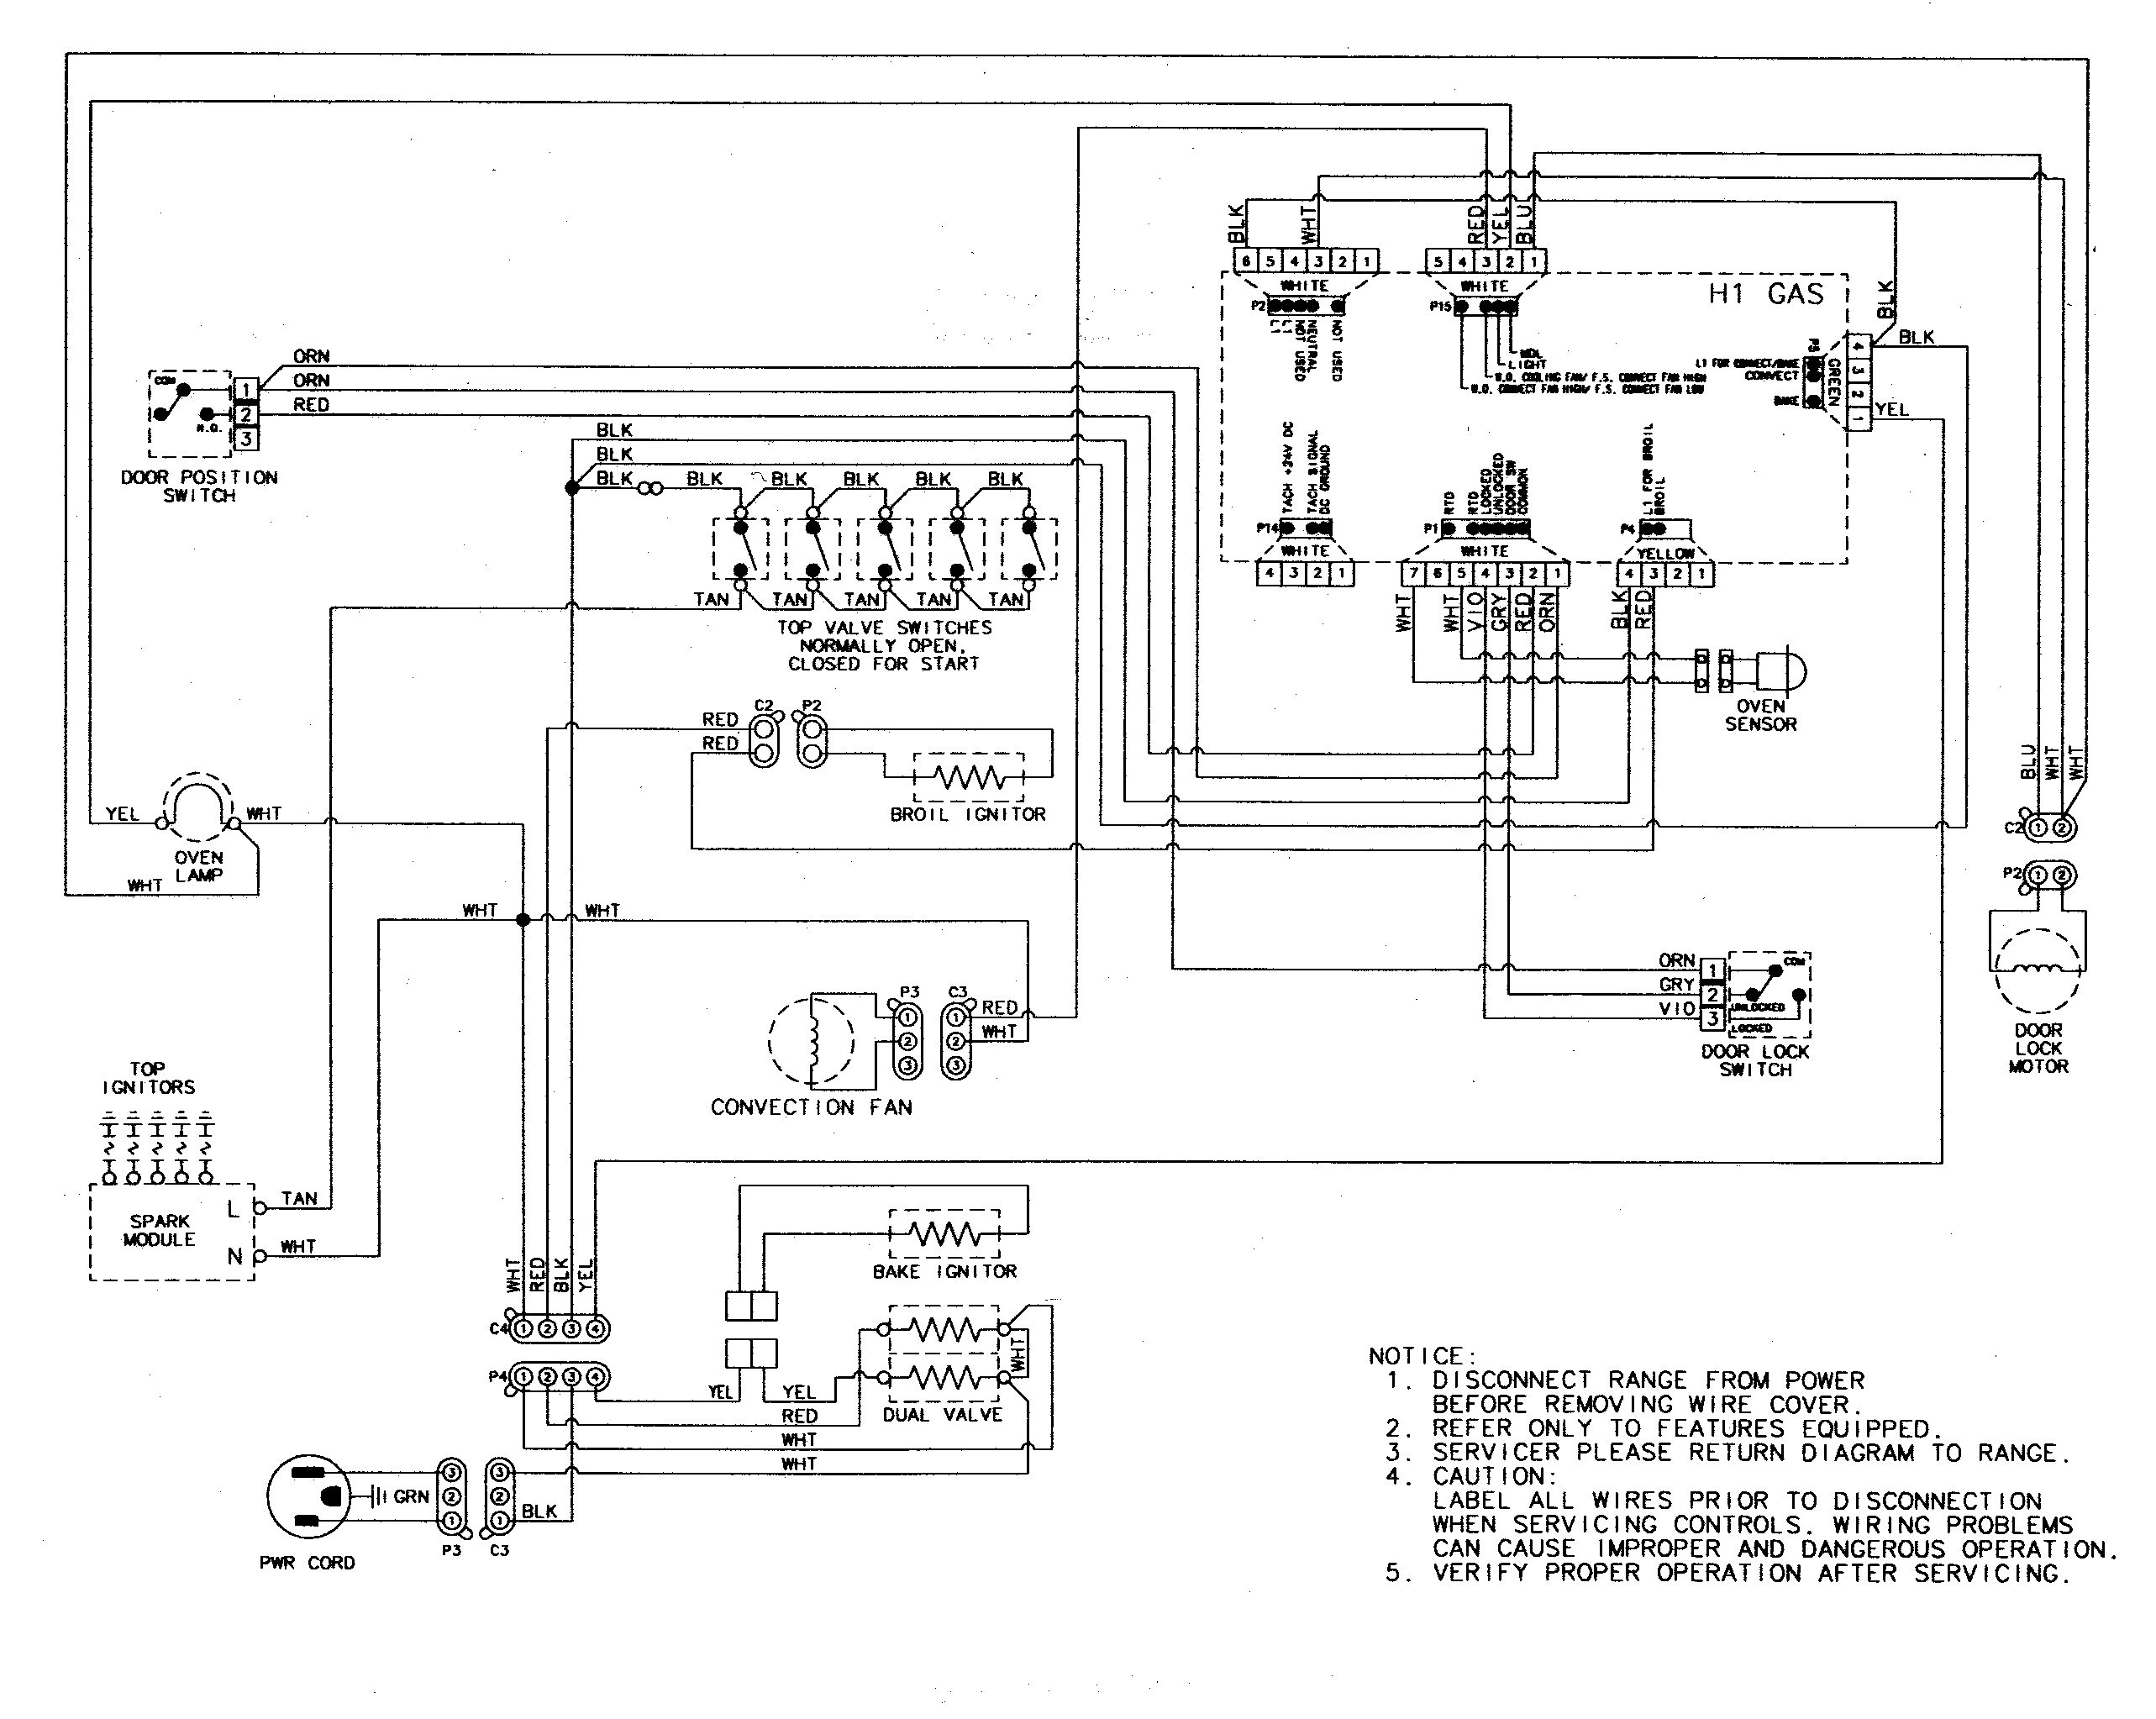 Wiring Diagram For Whirlpool - Engine Wiring Diagram on